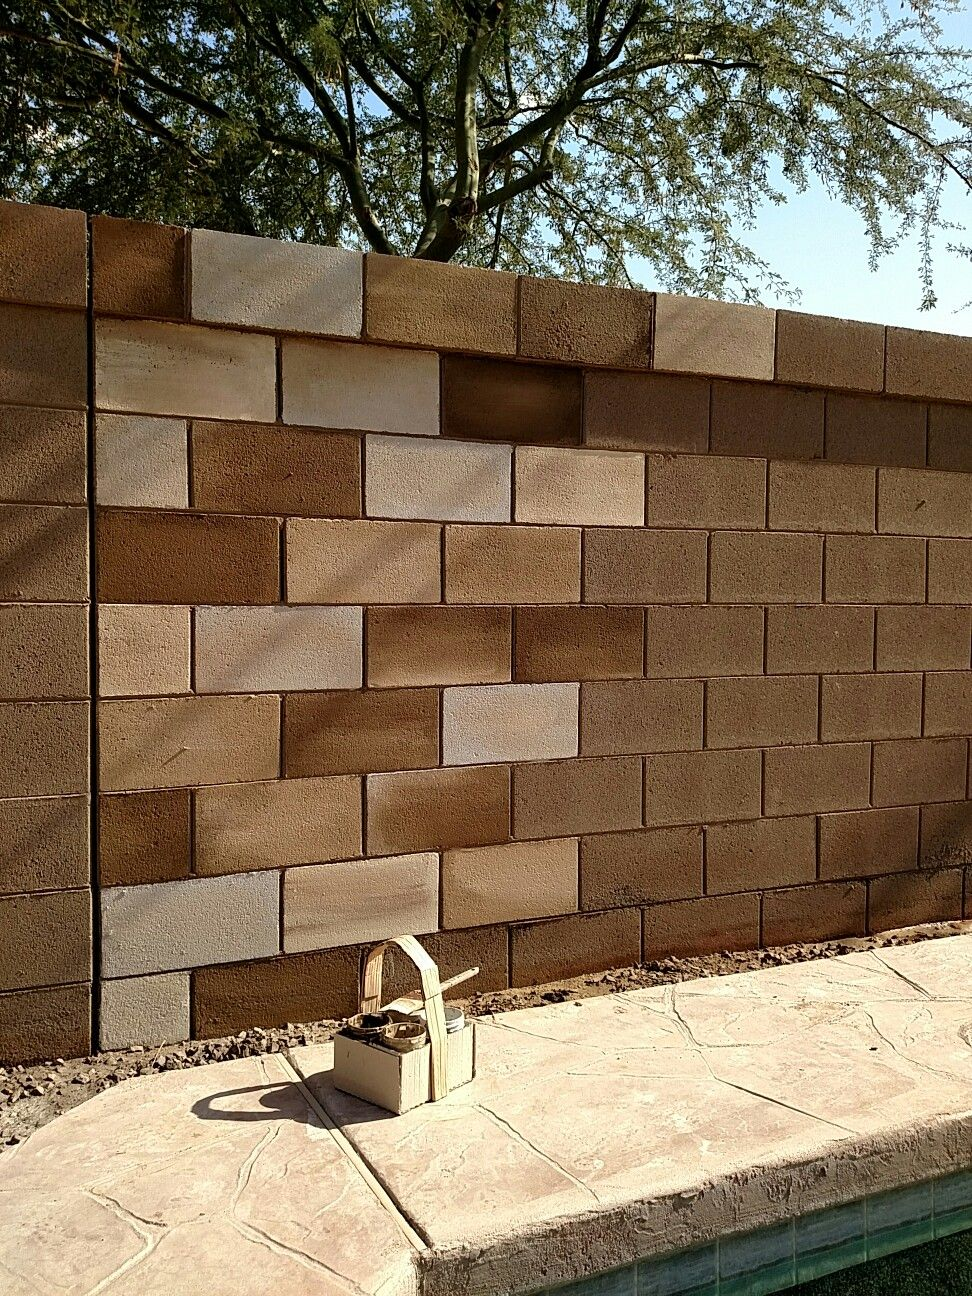 Cinder Hollow Block Wall Decorating Cinder Block Walls Cinder Block Garden Wall Cinder Block Walls